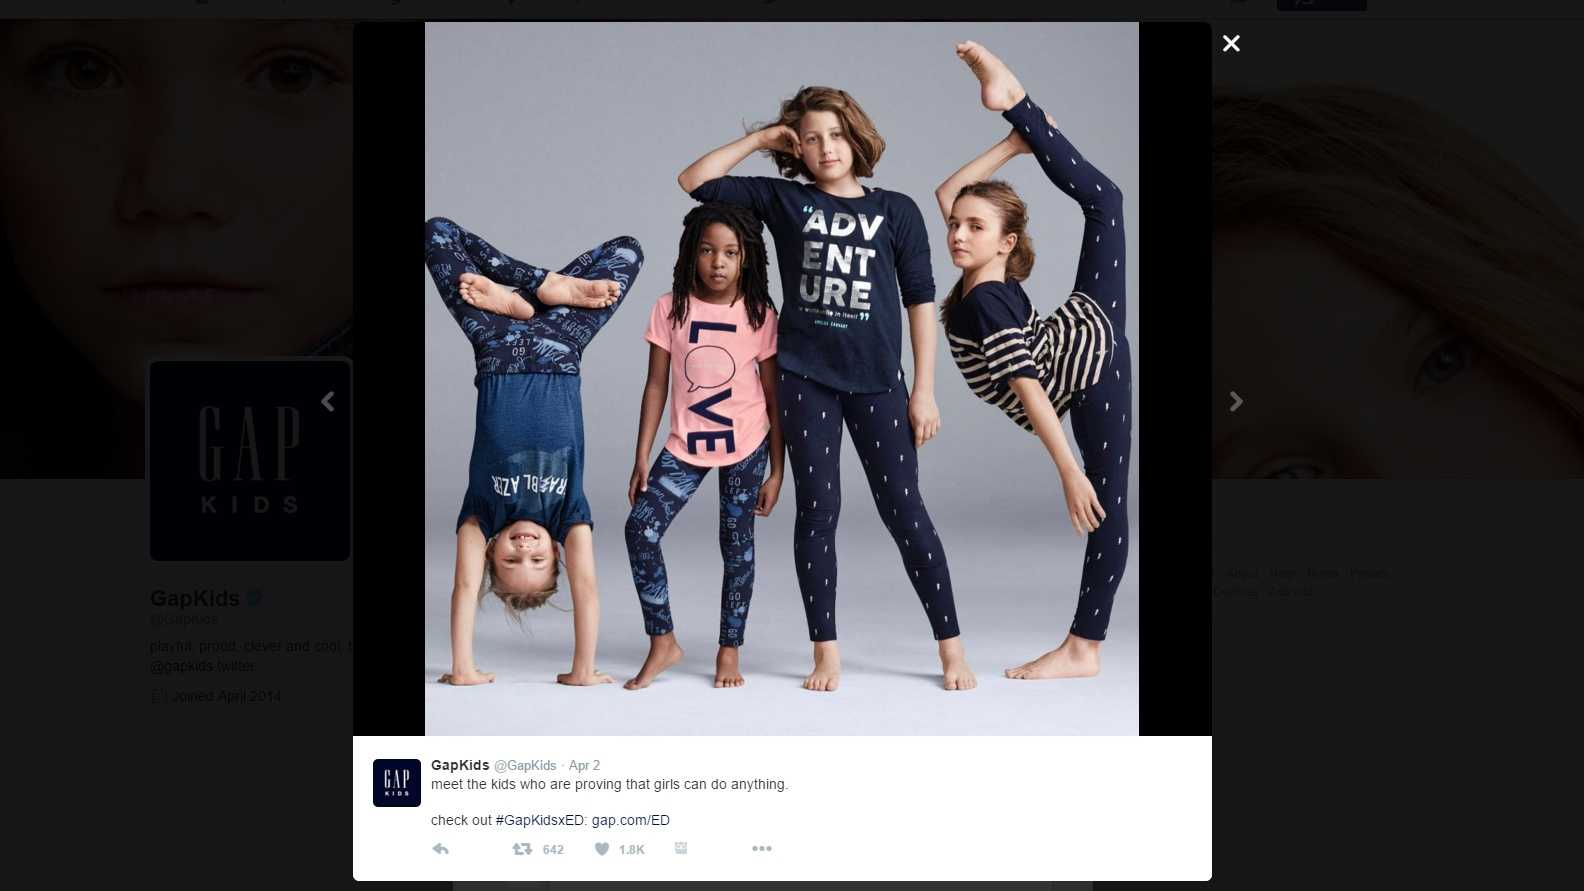 Photo tweeted as part of Gap Kids campaign has led to a debate on race.